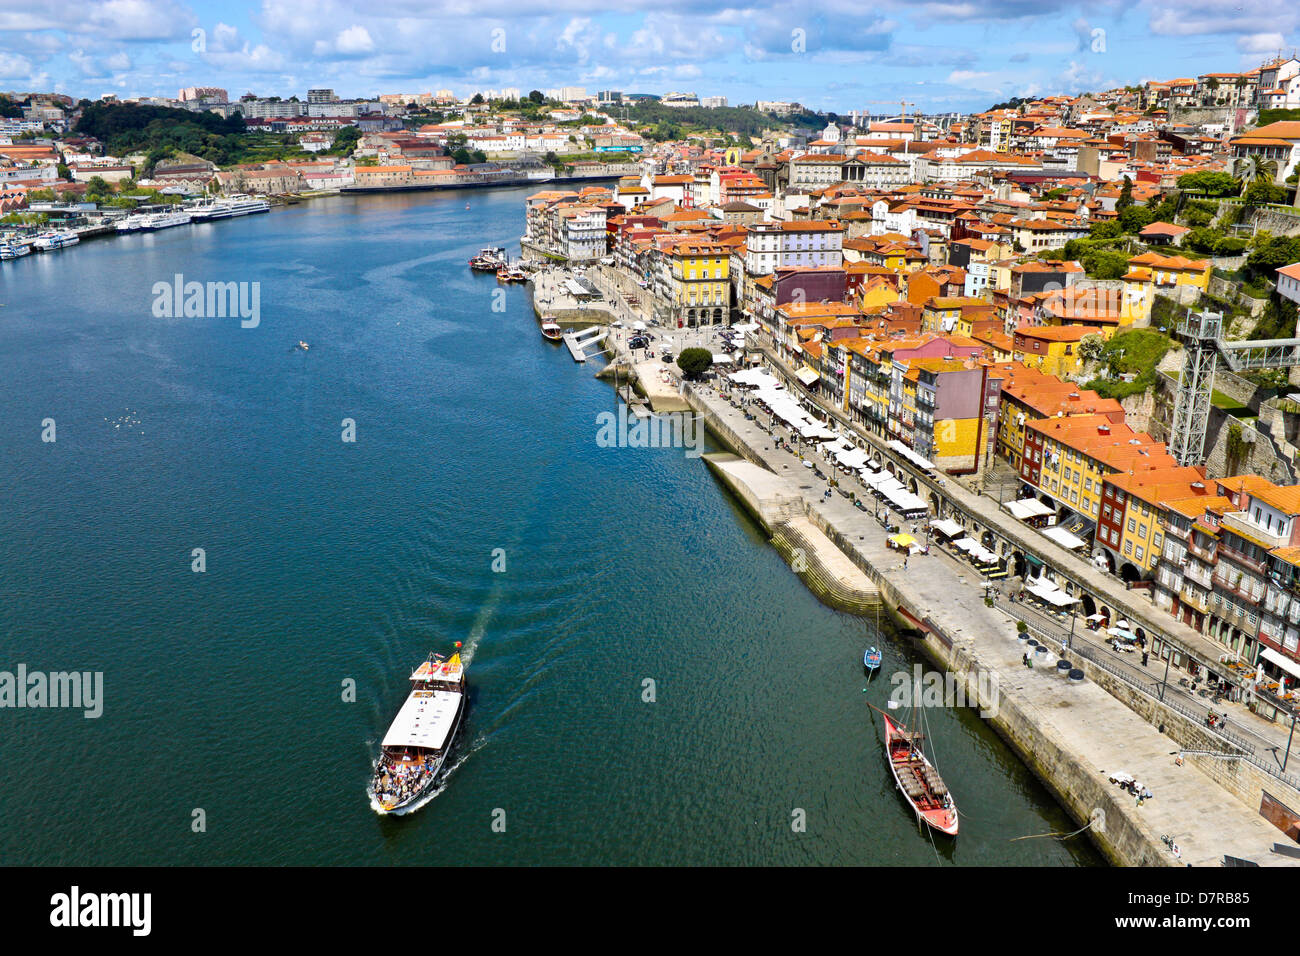 view of Porto and boats on Douro river - Stock Image